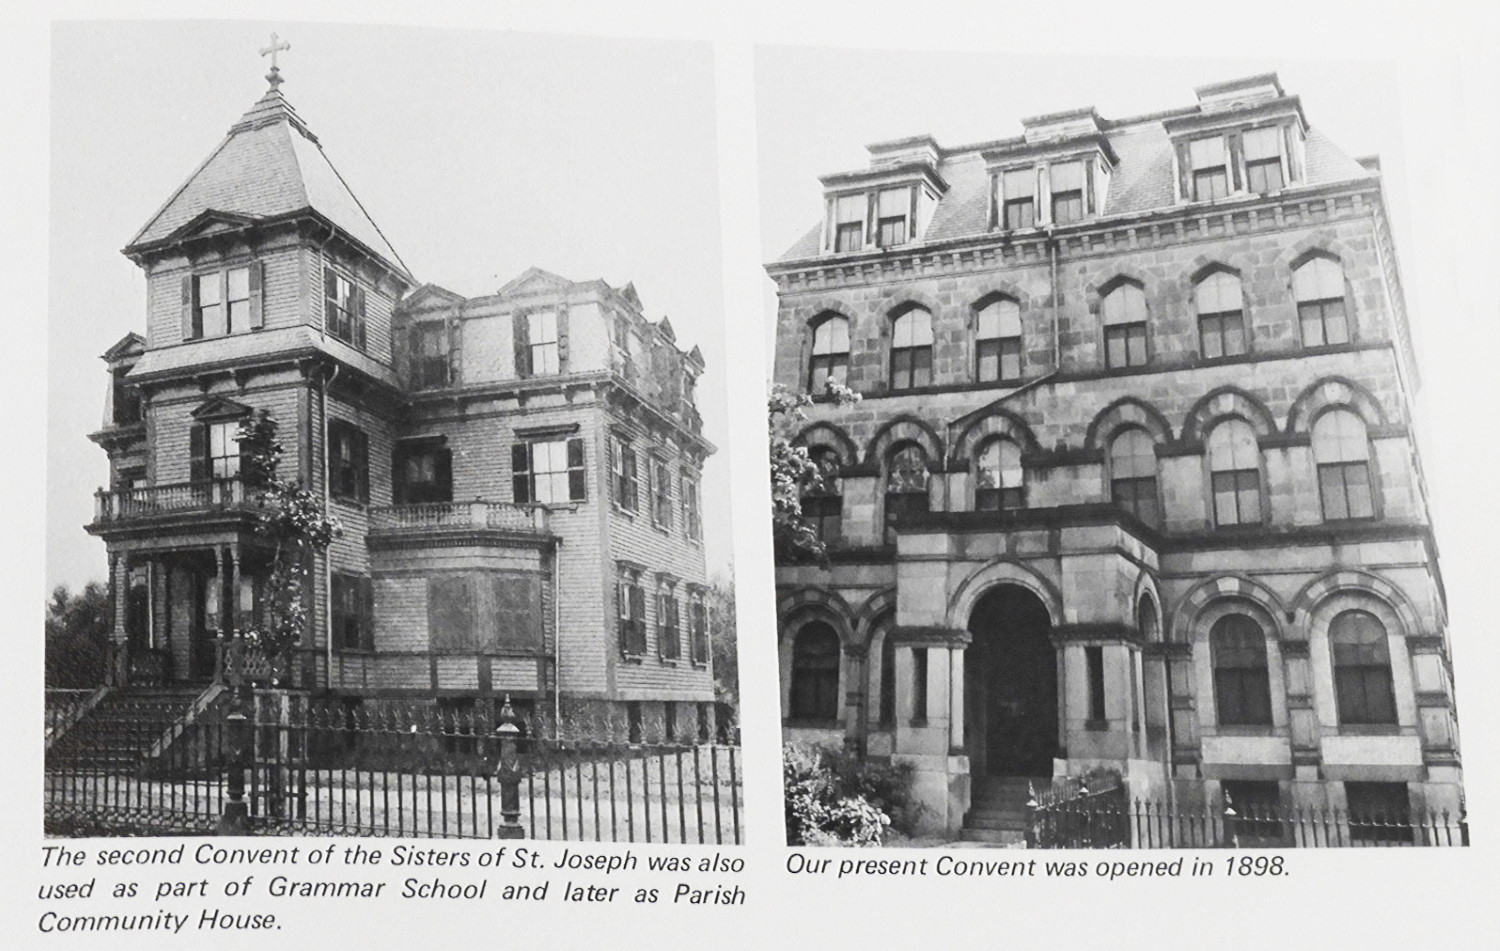 The Convent, showing the 1886 wood-frame enlargement on left and the 1898 stone addition on right. From  Centennial History of St. Thomas Aquinas Church,  1969. Archives of the Archdiocese of Boston.